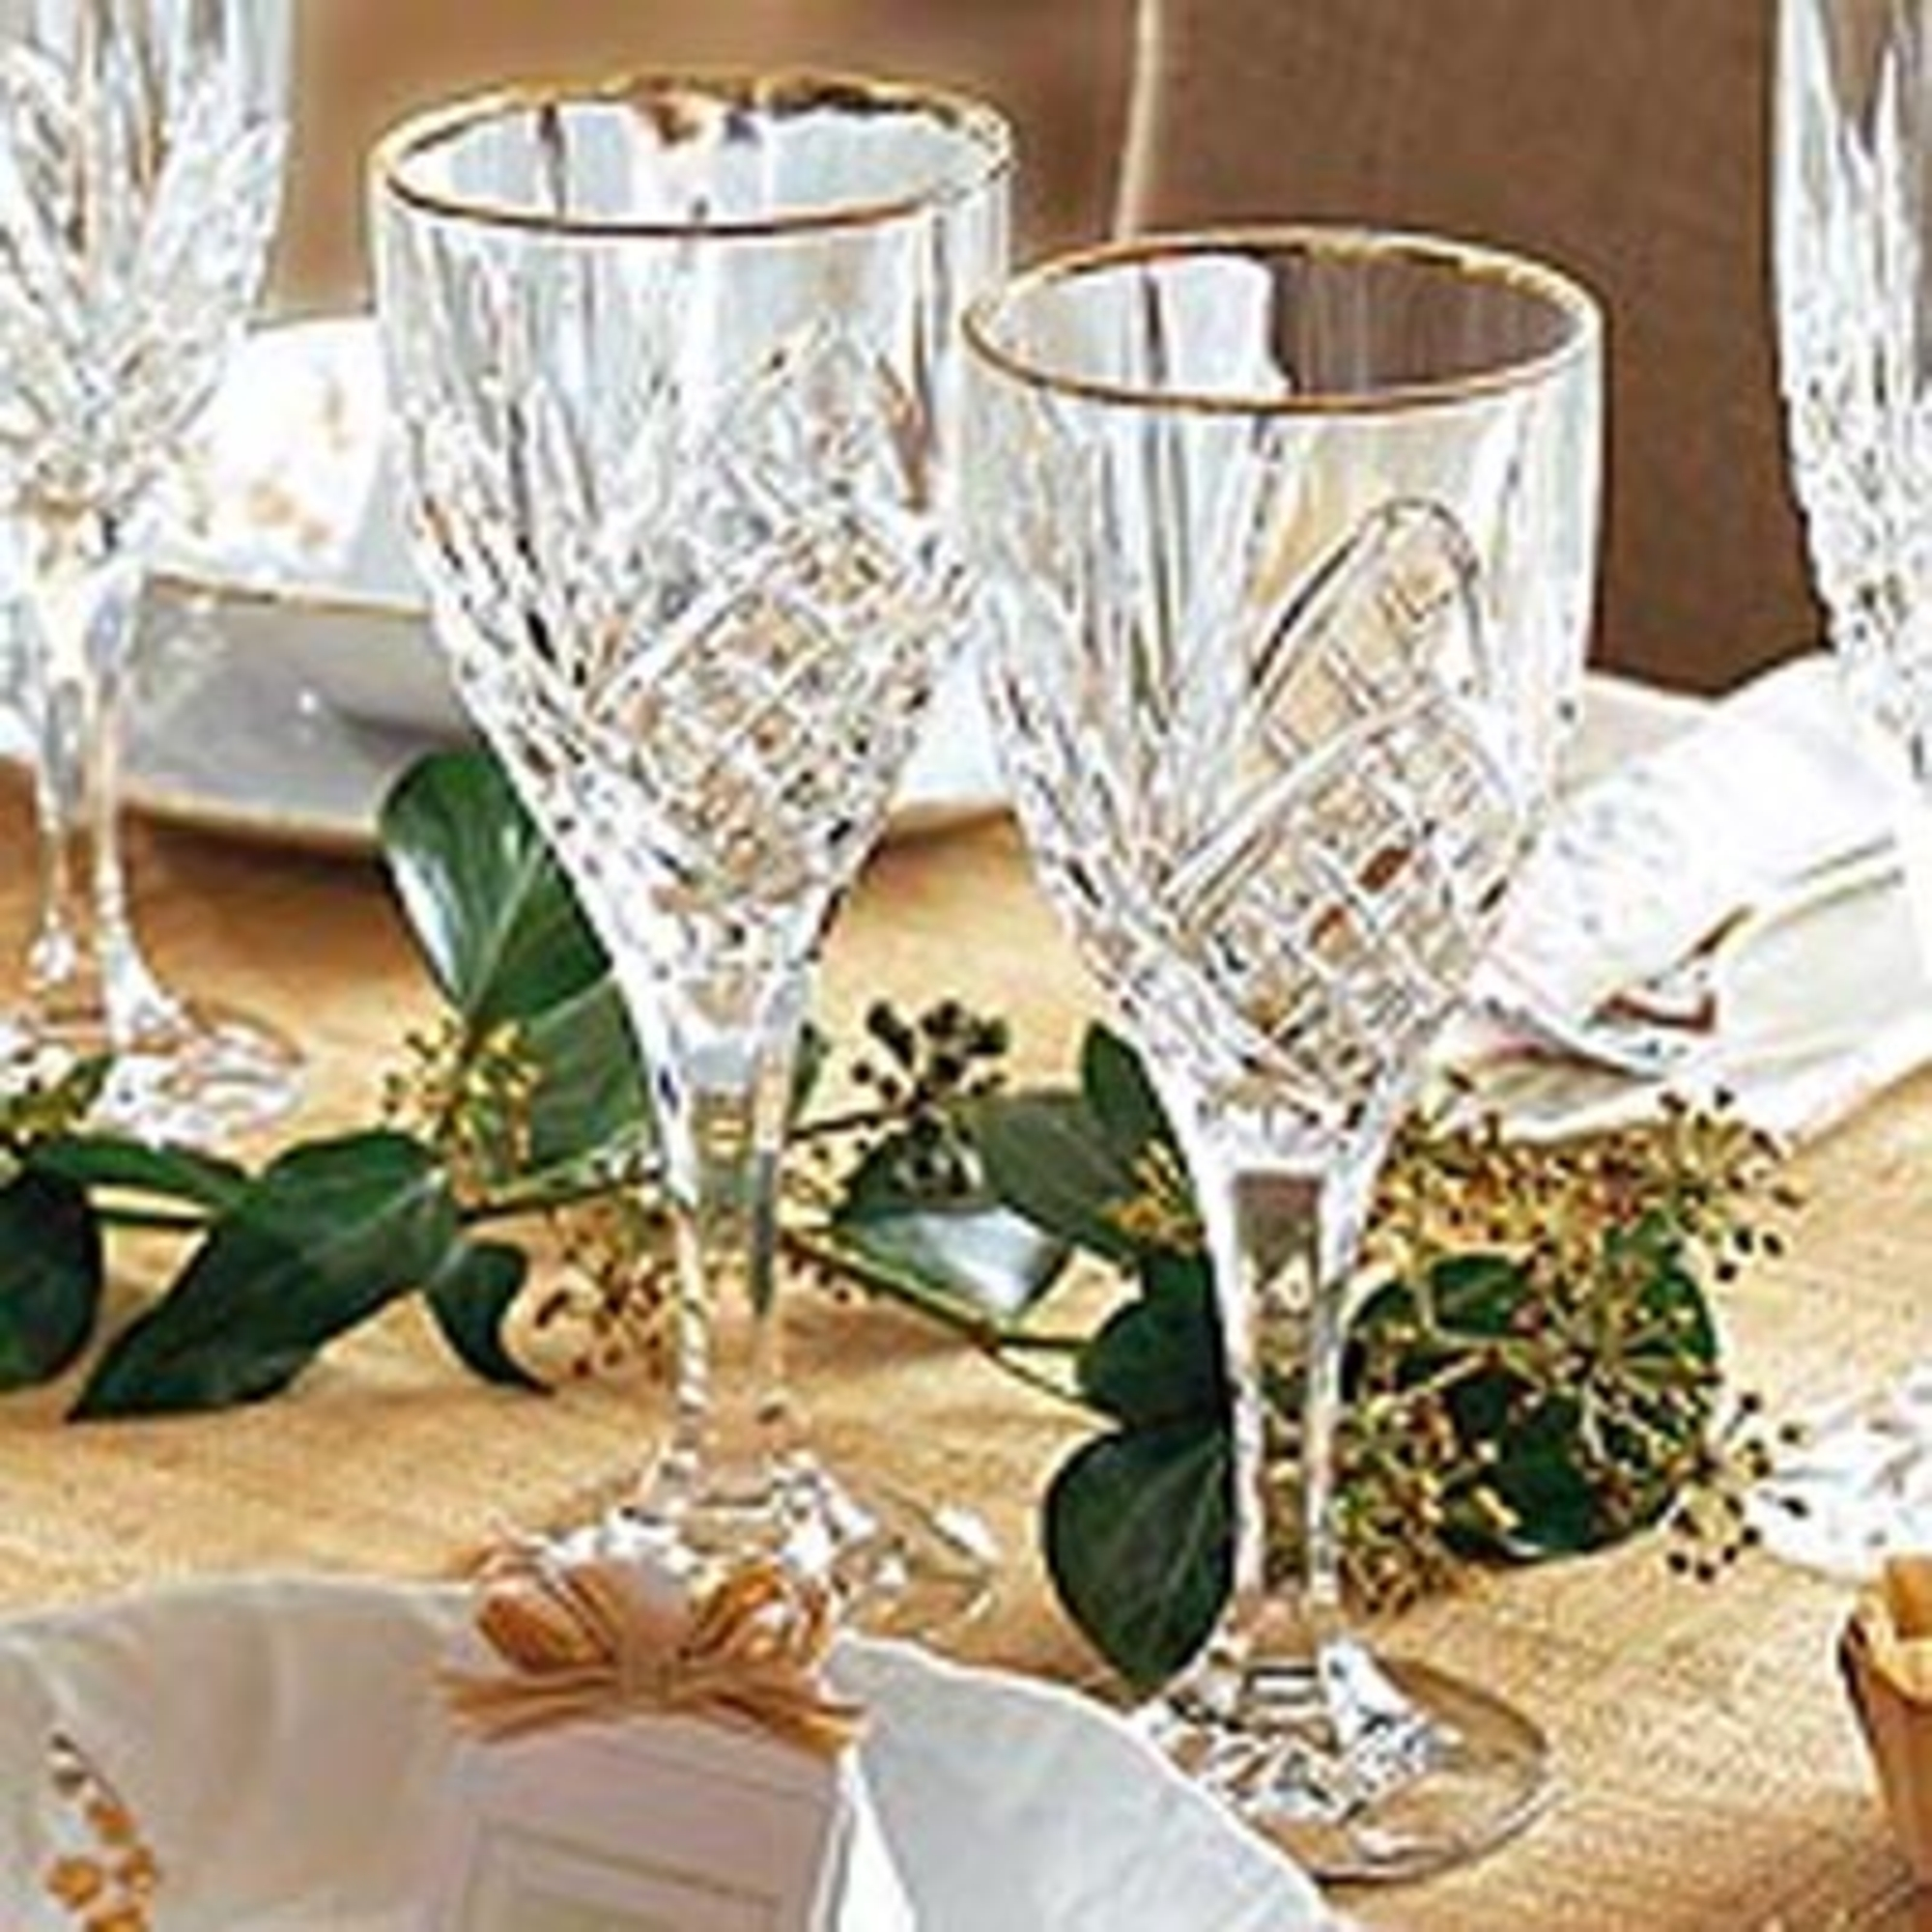 service de verres cristal 50 pi ces chamberlain avec. Black Bedroom Furniture Sets. Home Design Ideas